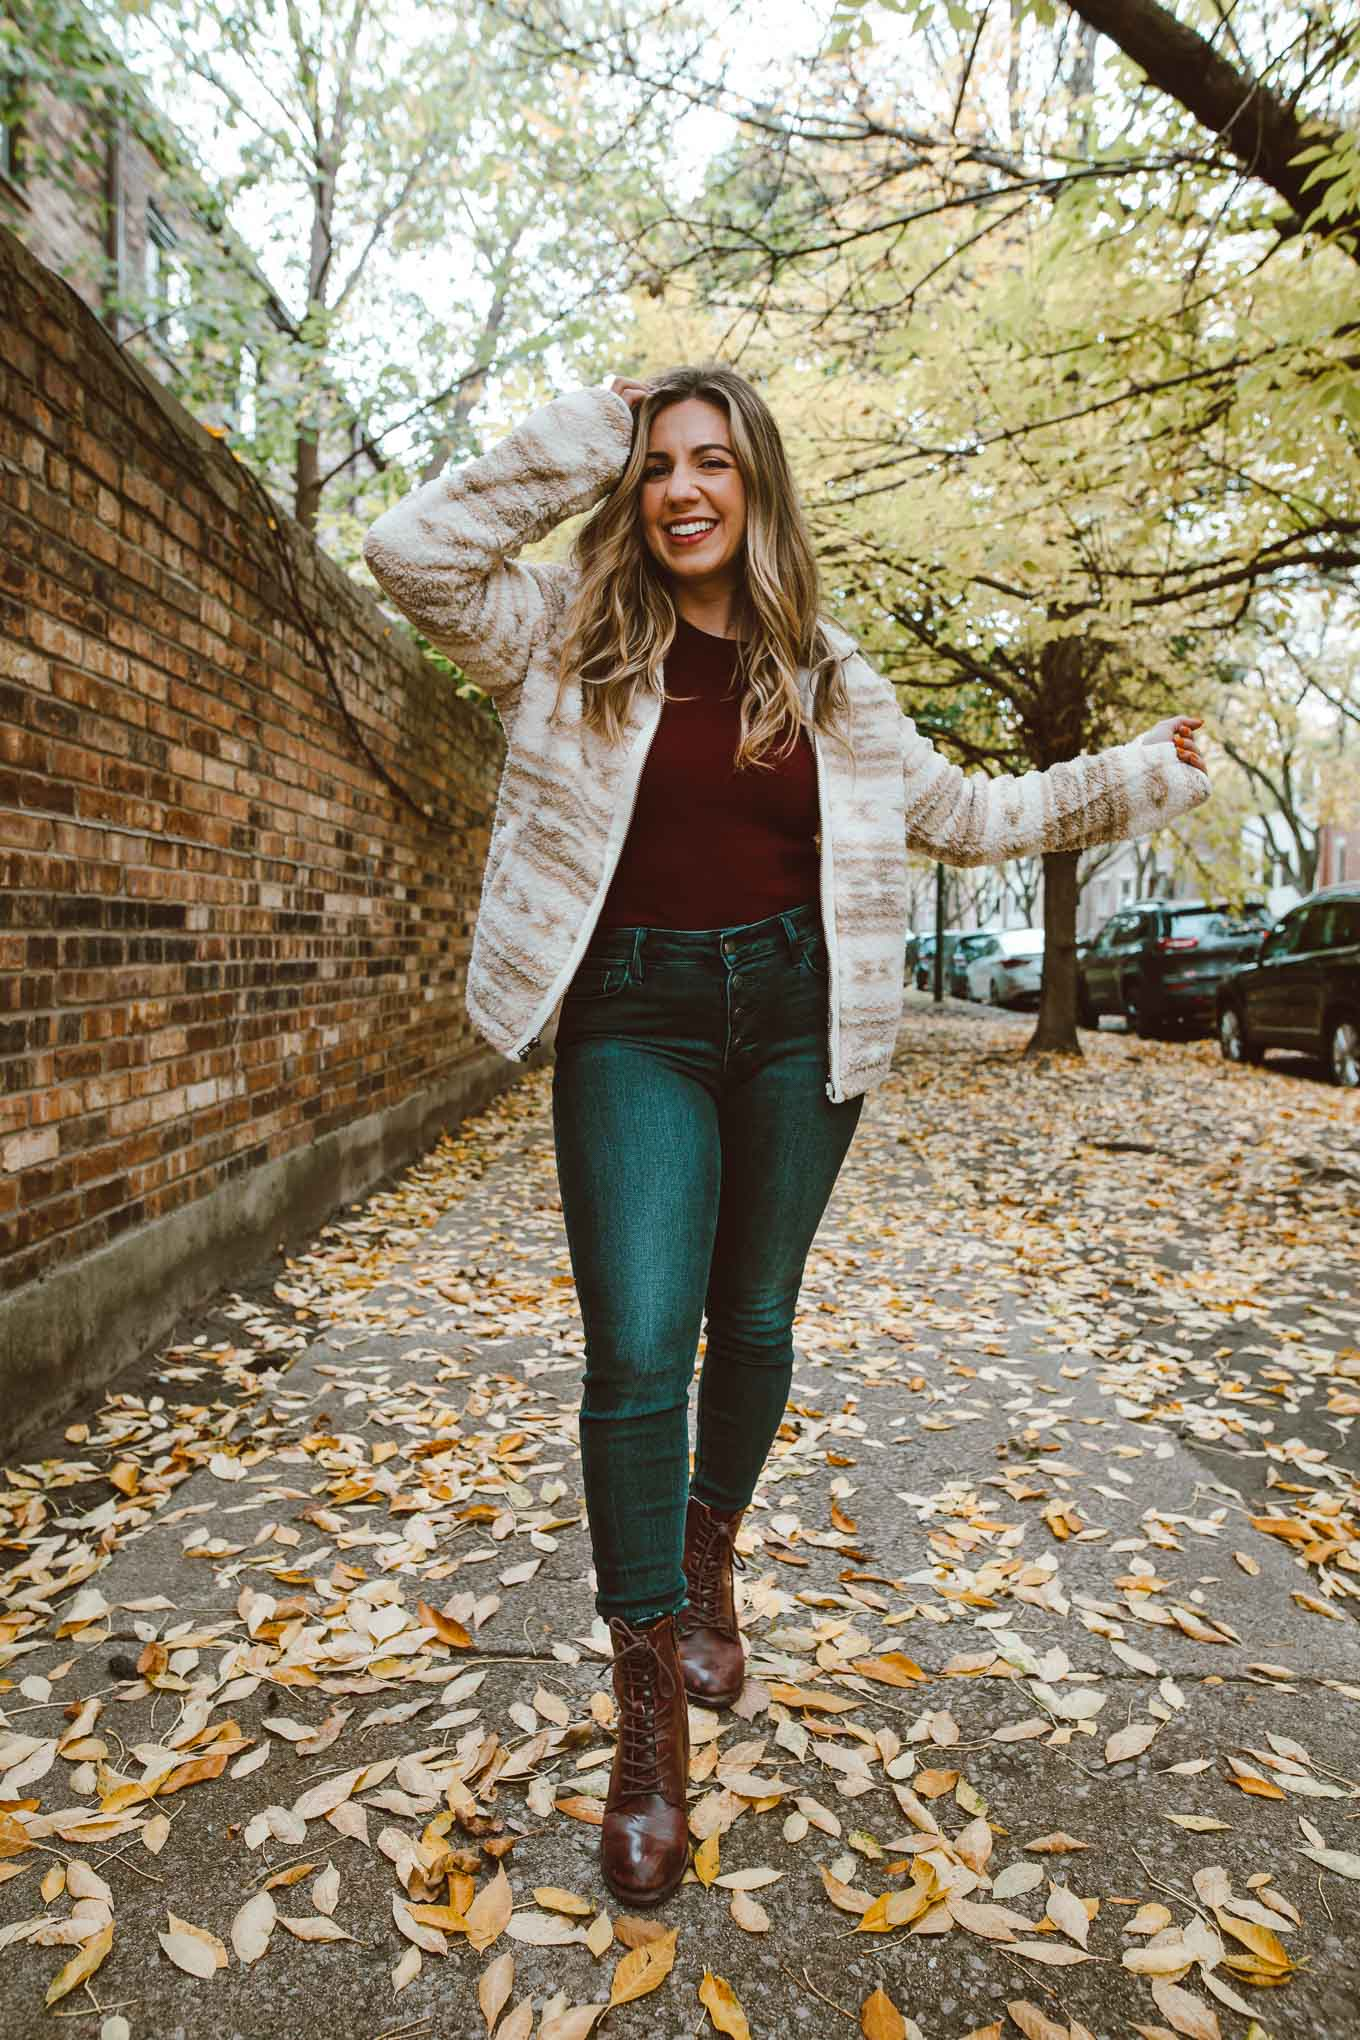 Sherpa Clothing by popular Chicago fashion blog, Glass of Glam: image of a woman walking through some leaves and wearing a red shirt, Old Navy Rockstar Jeans, Old Navy Cozy Sherpa Zip-Front Jacket for Women, and Patricia Nash Womens Sicily Leather Closed Toe Ankle Fashion Boots.